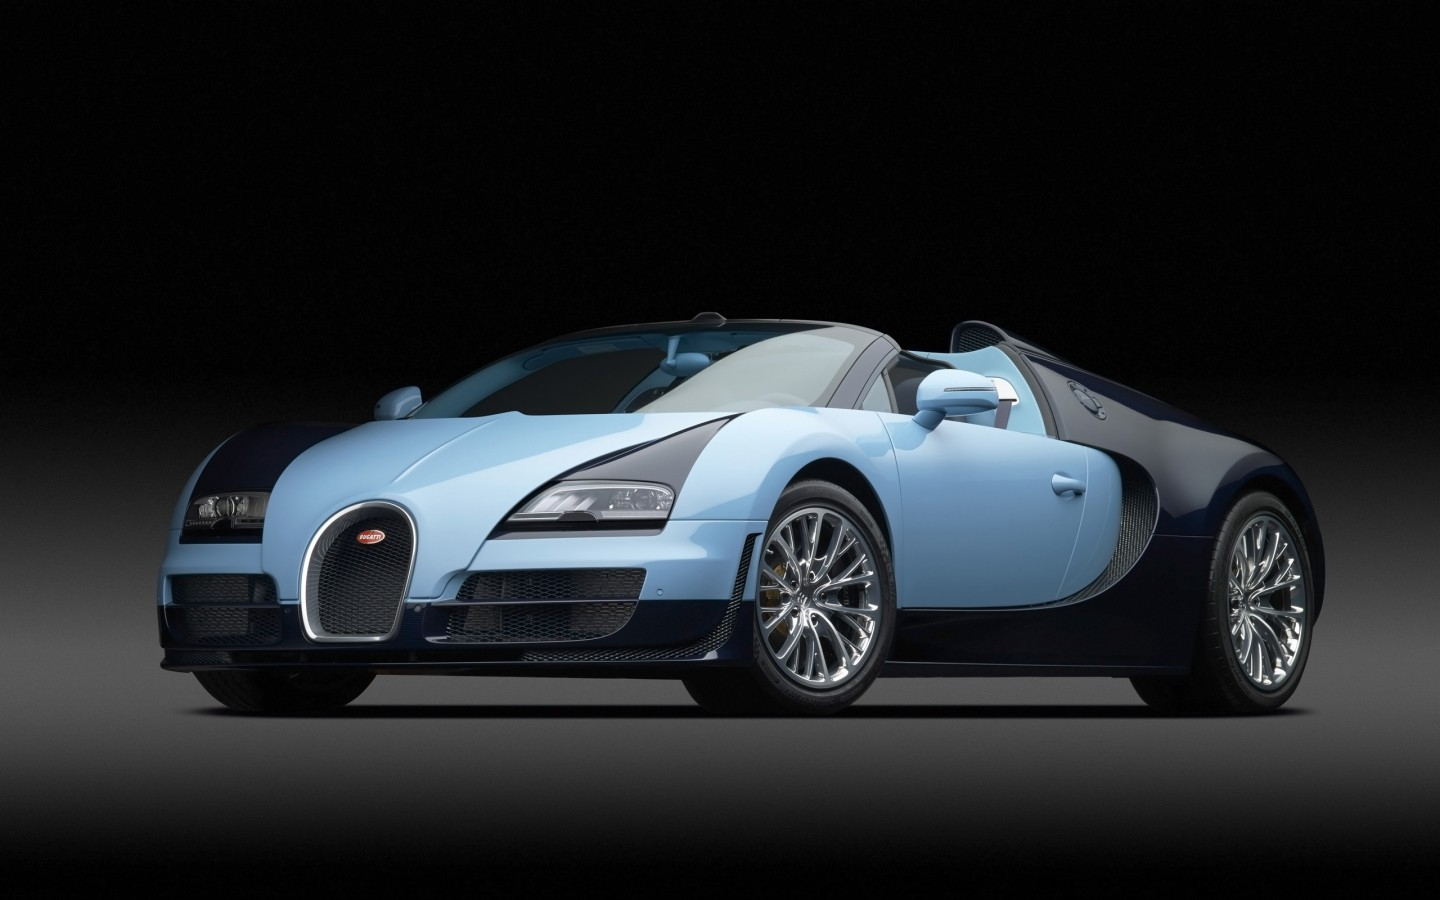 bugatti veyron grand sport vitesse legend jean pierre wimille 2013 wallpaper hd car wallpapers. Black Bedroom Furniture Sets. Home Design Ideas